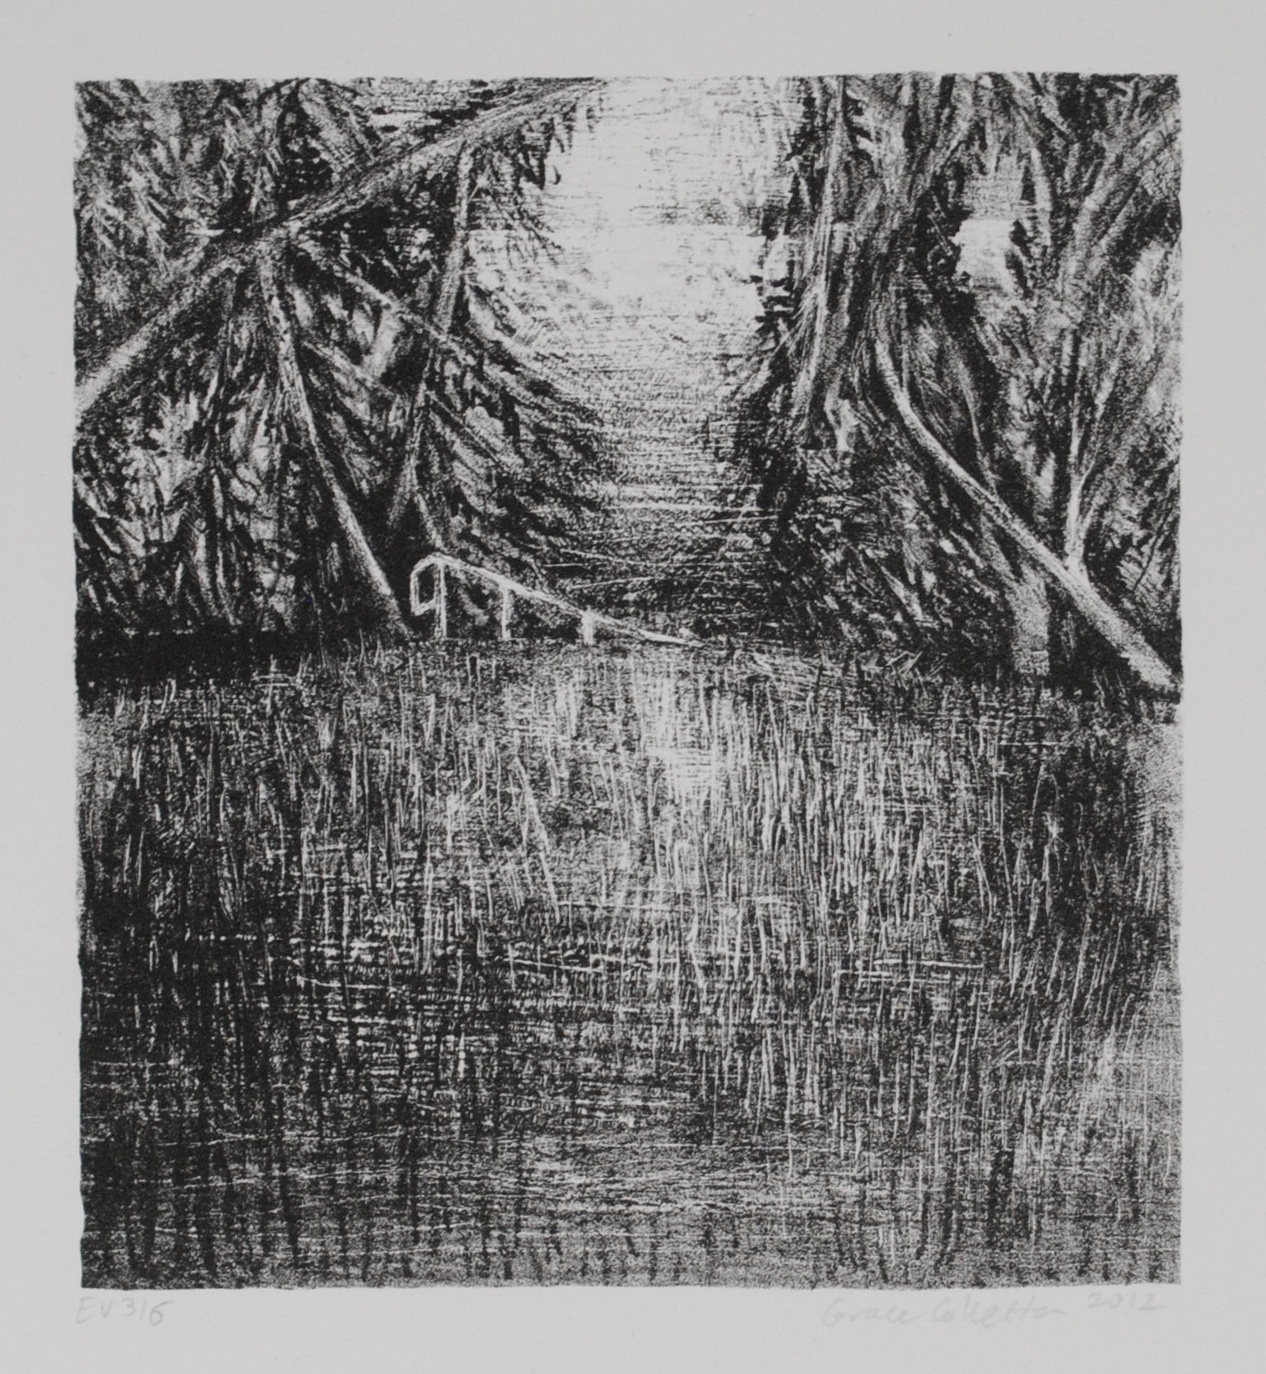 Landscape with hand rail, Stone Lithograph, 6.25 x 5.75 inches, 2012